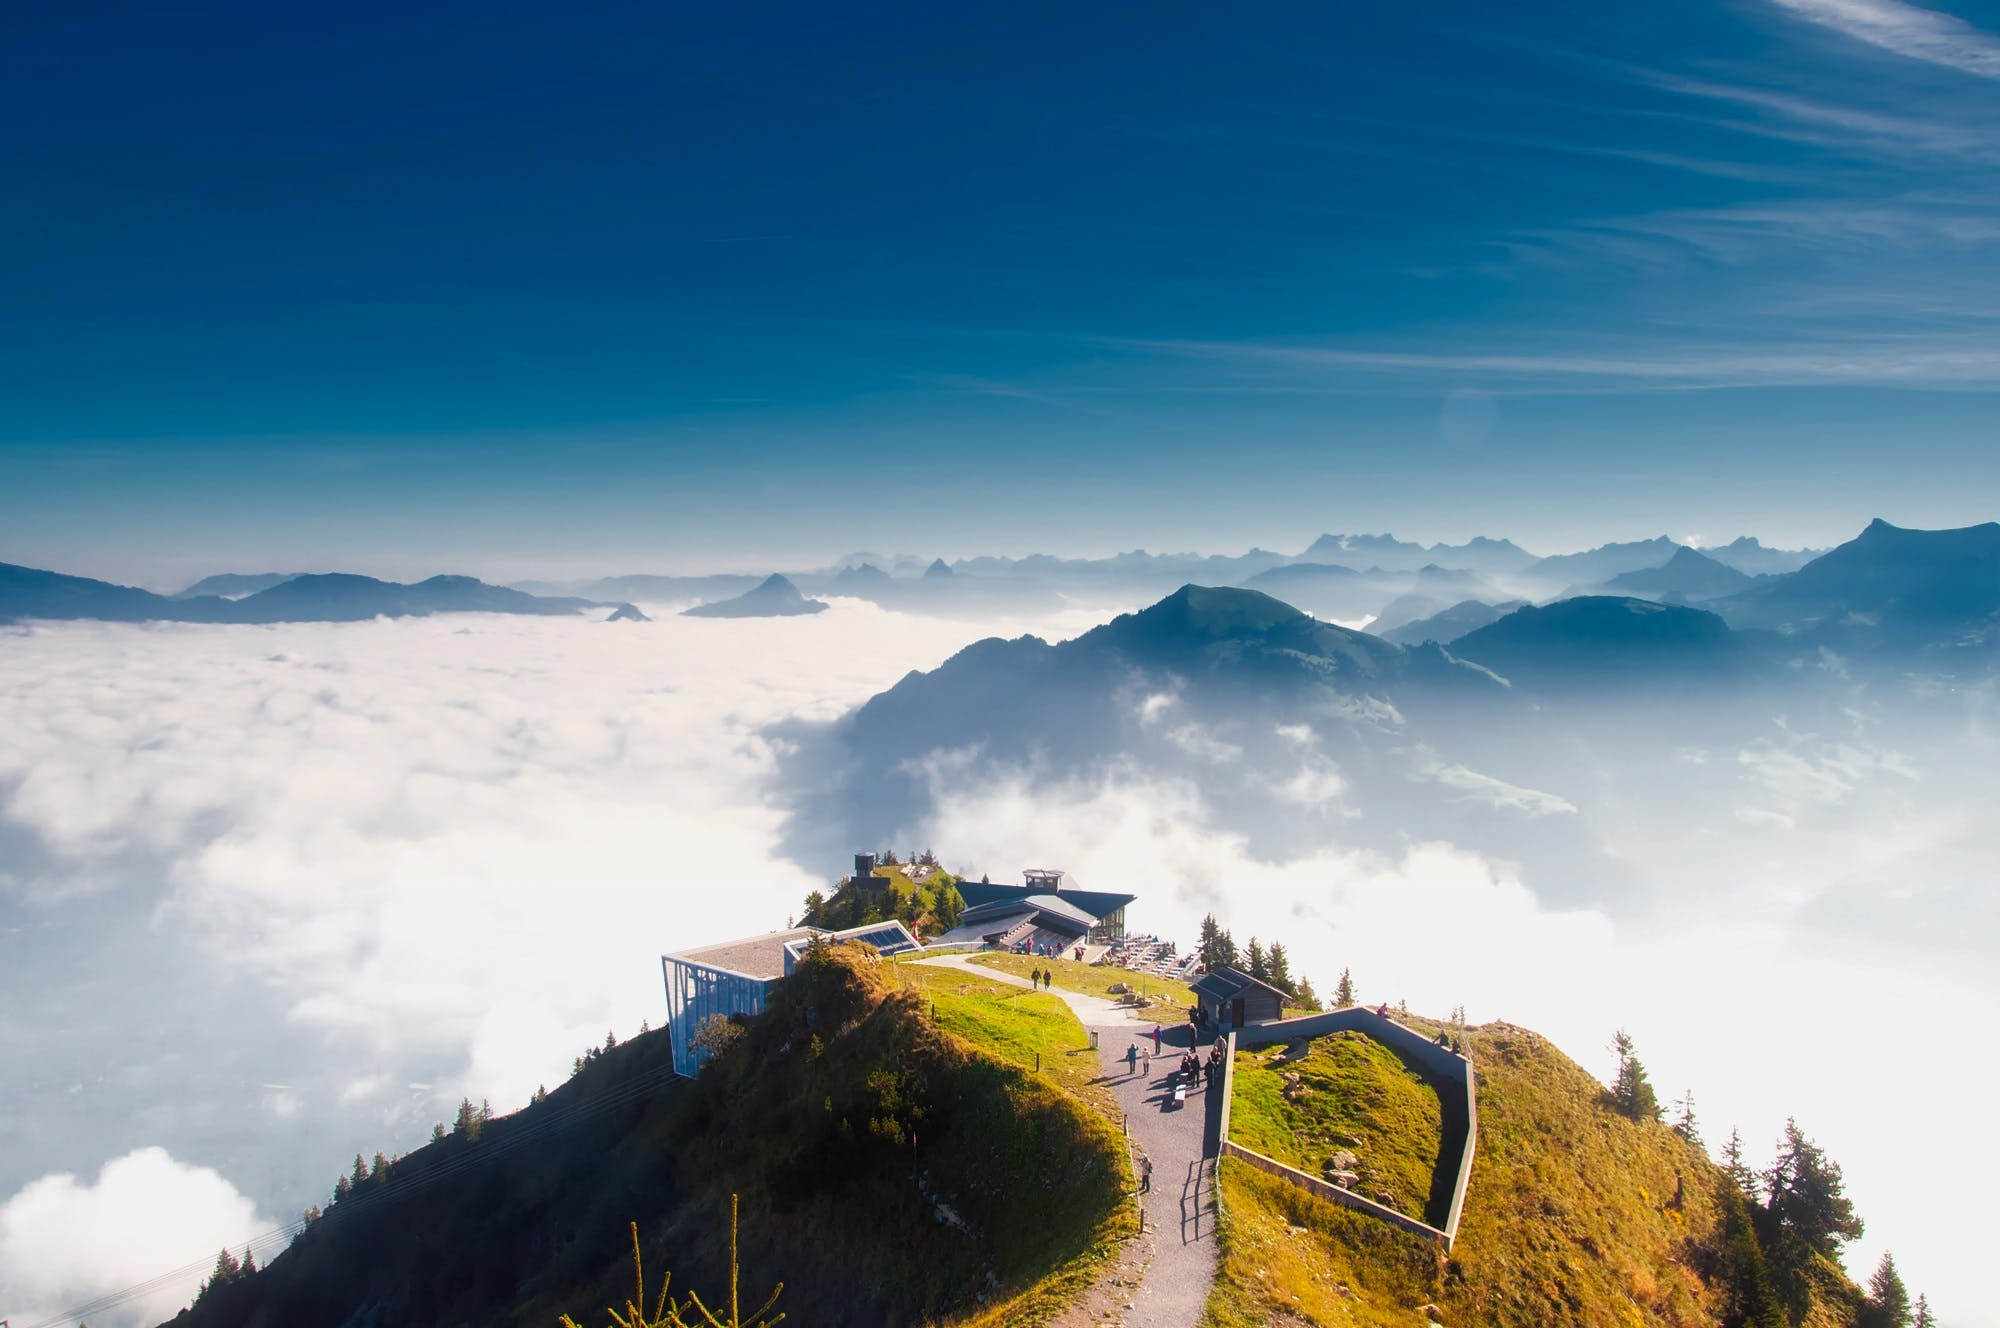 alps, clouds, daylight